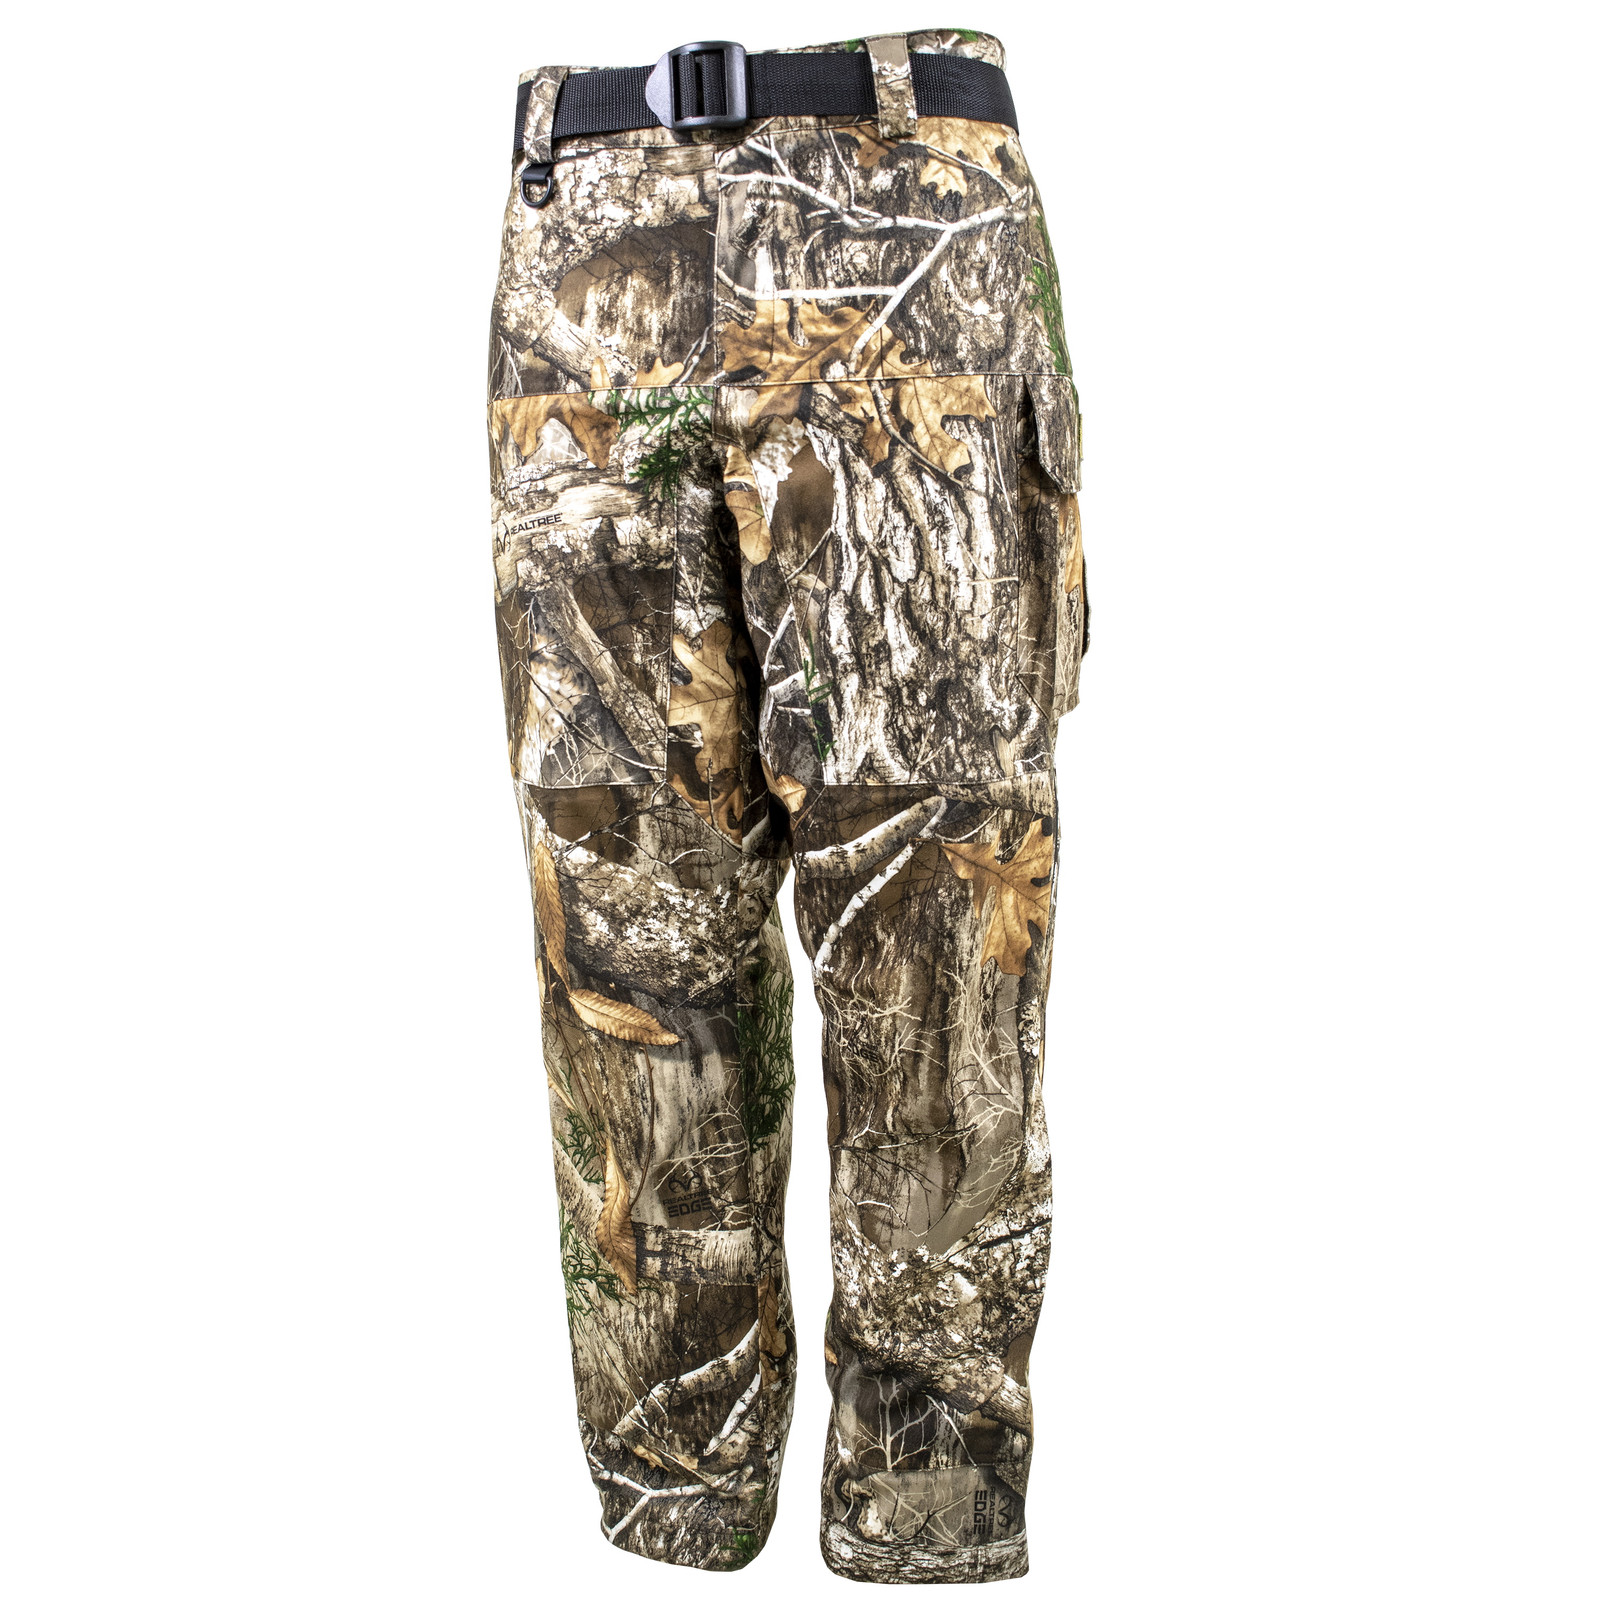 DS83160_Realtree-Edge_thumbnail-large